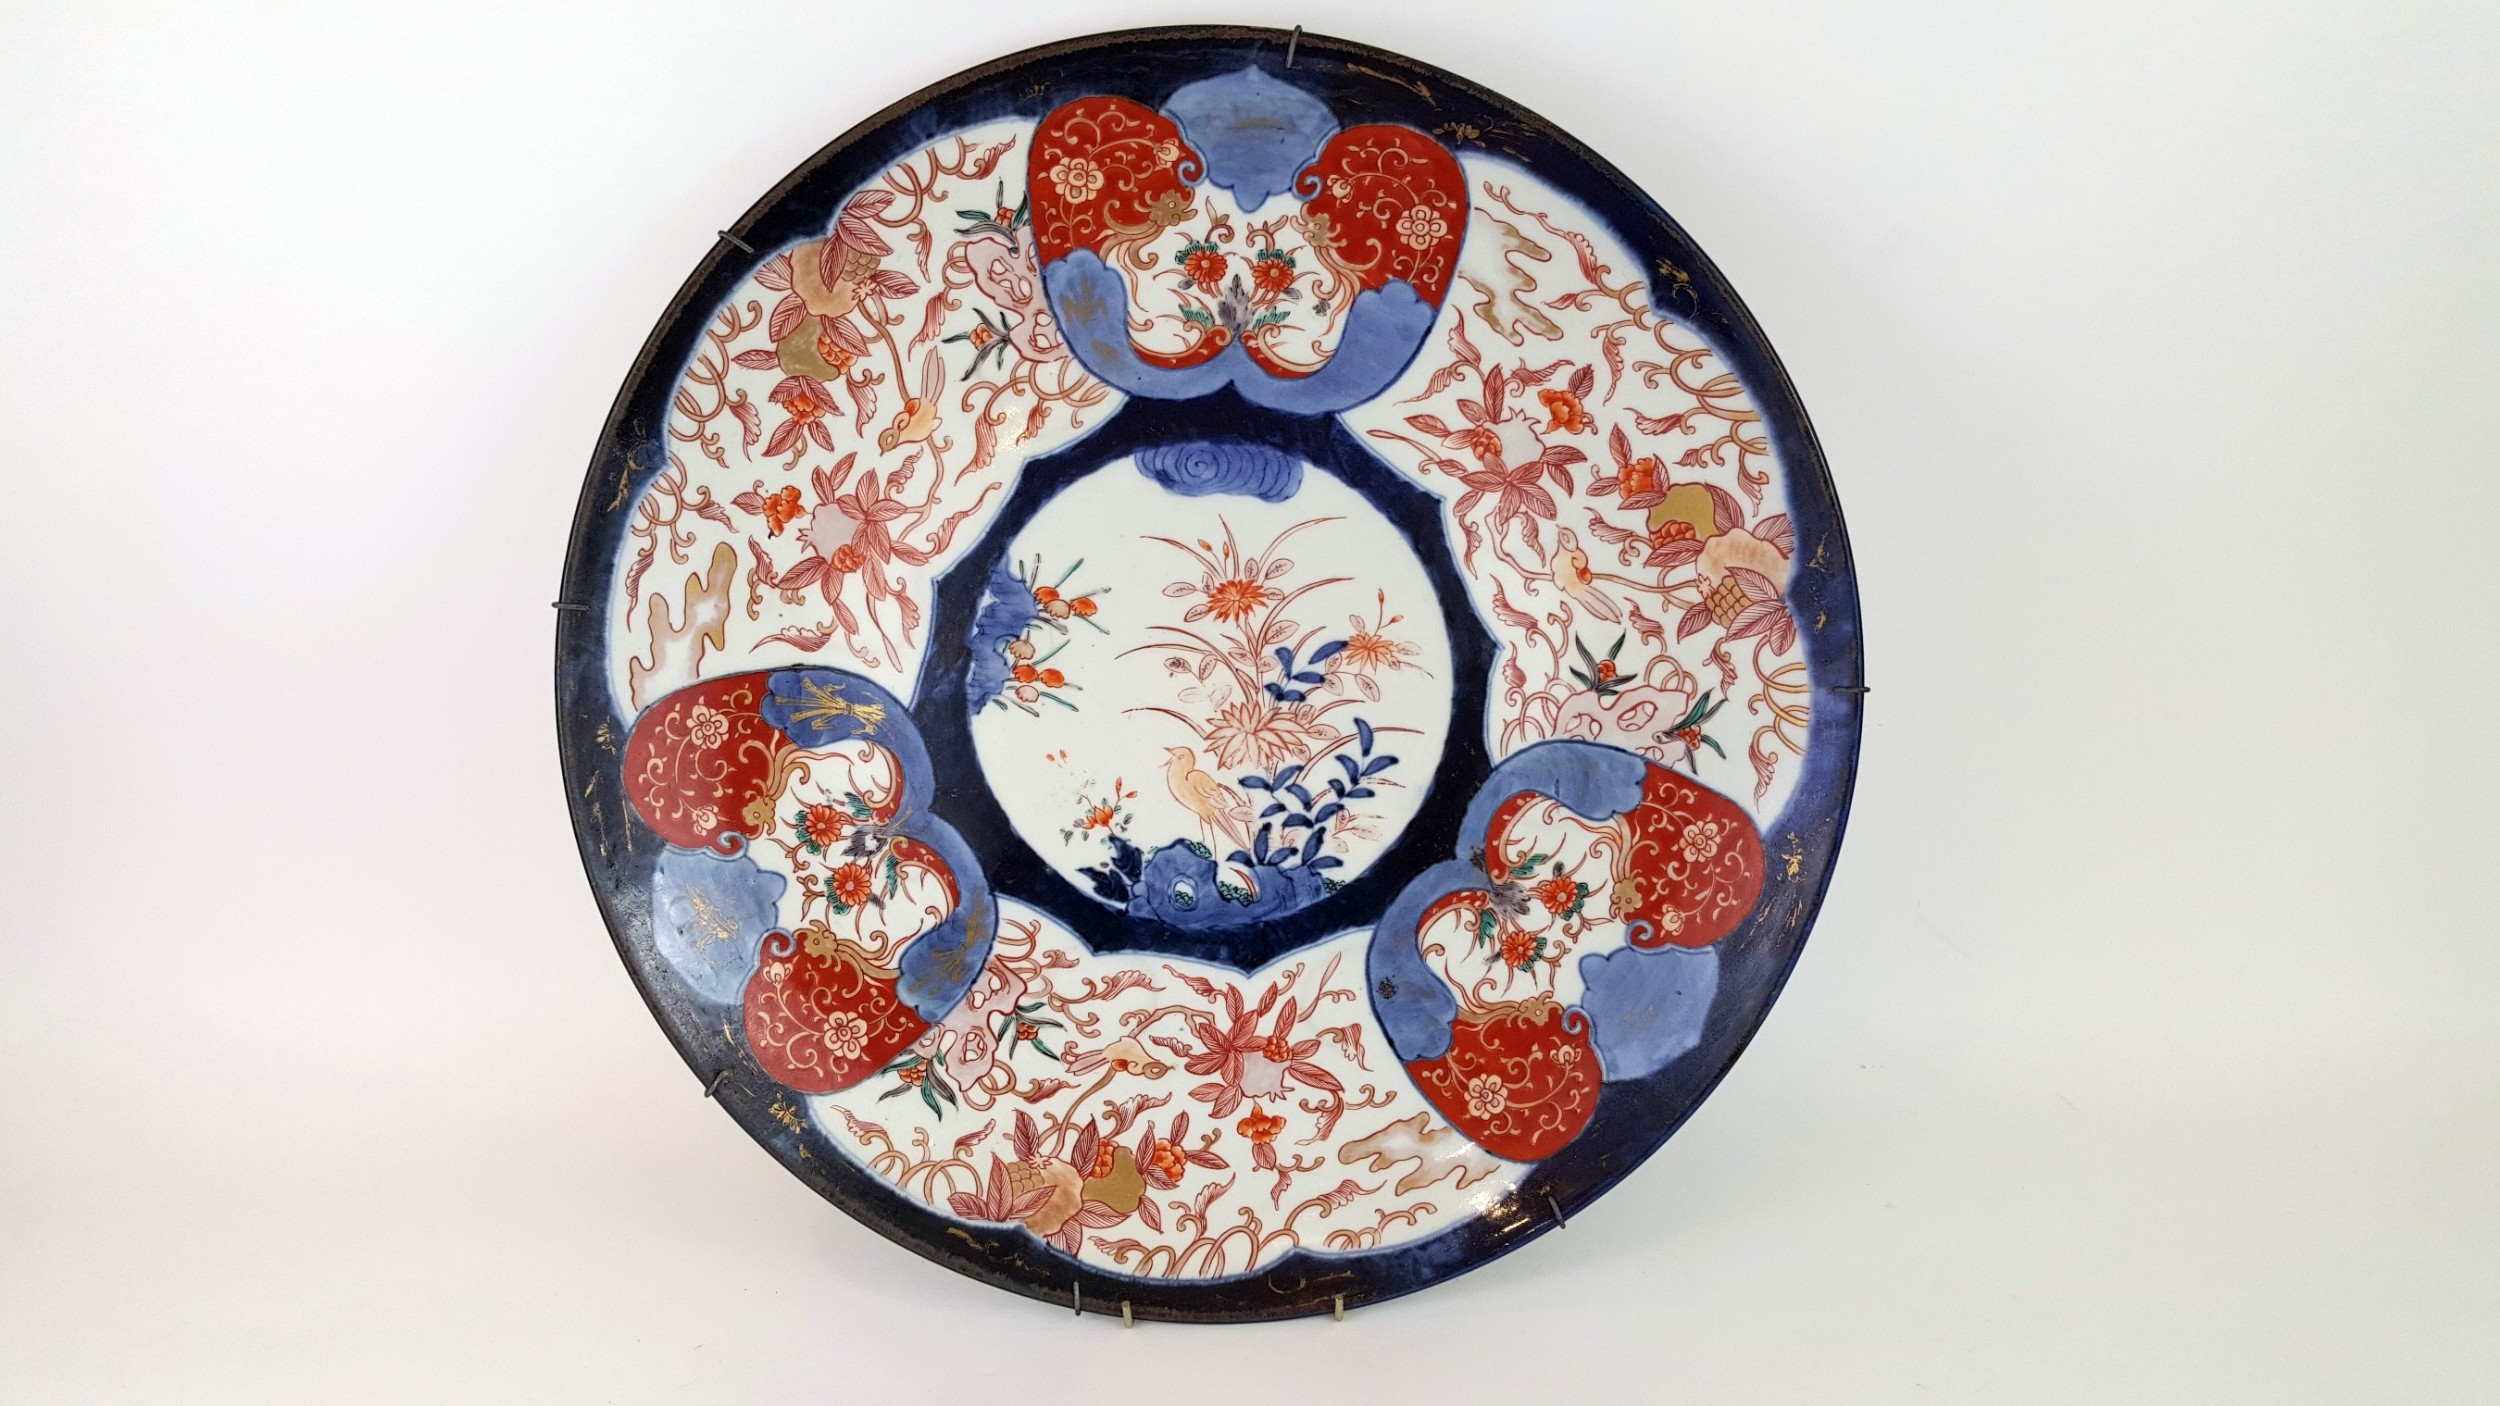 meiji period 19th century japanese large imari